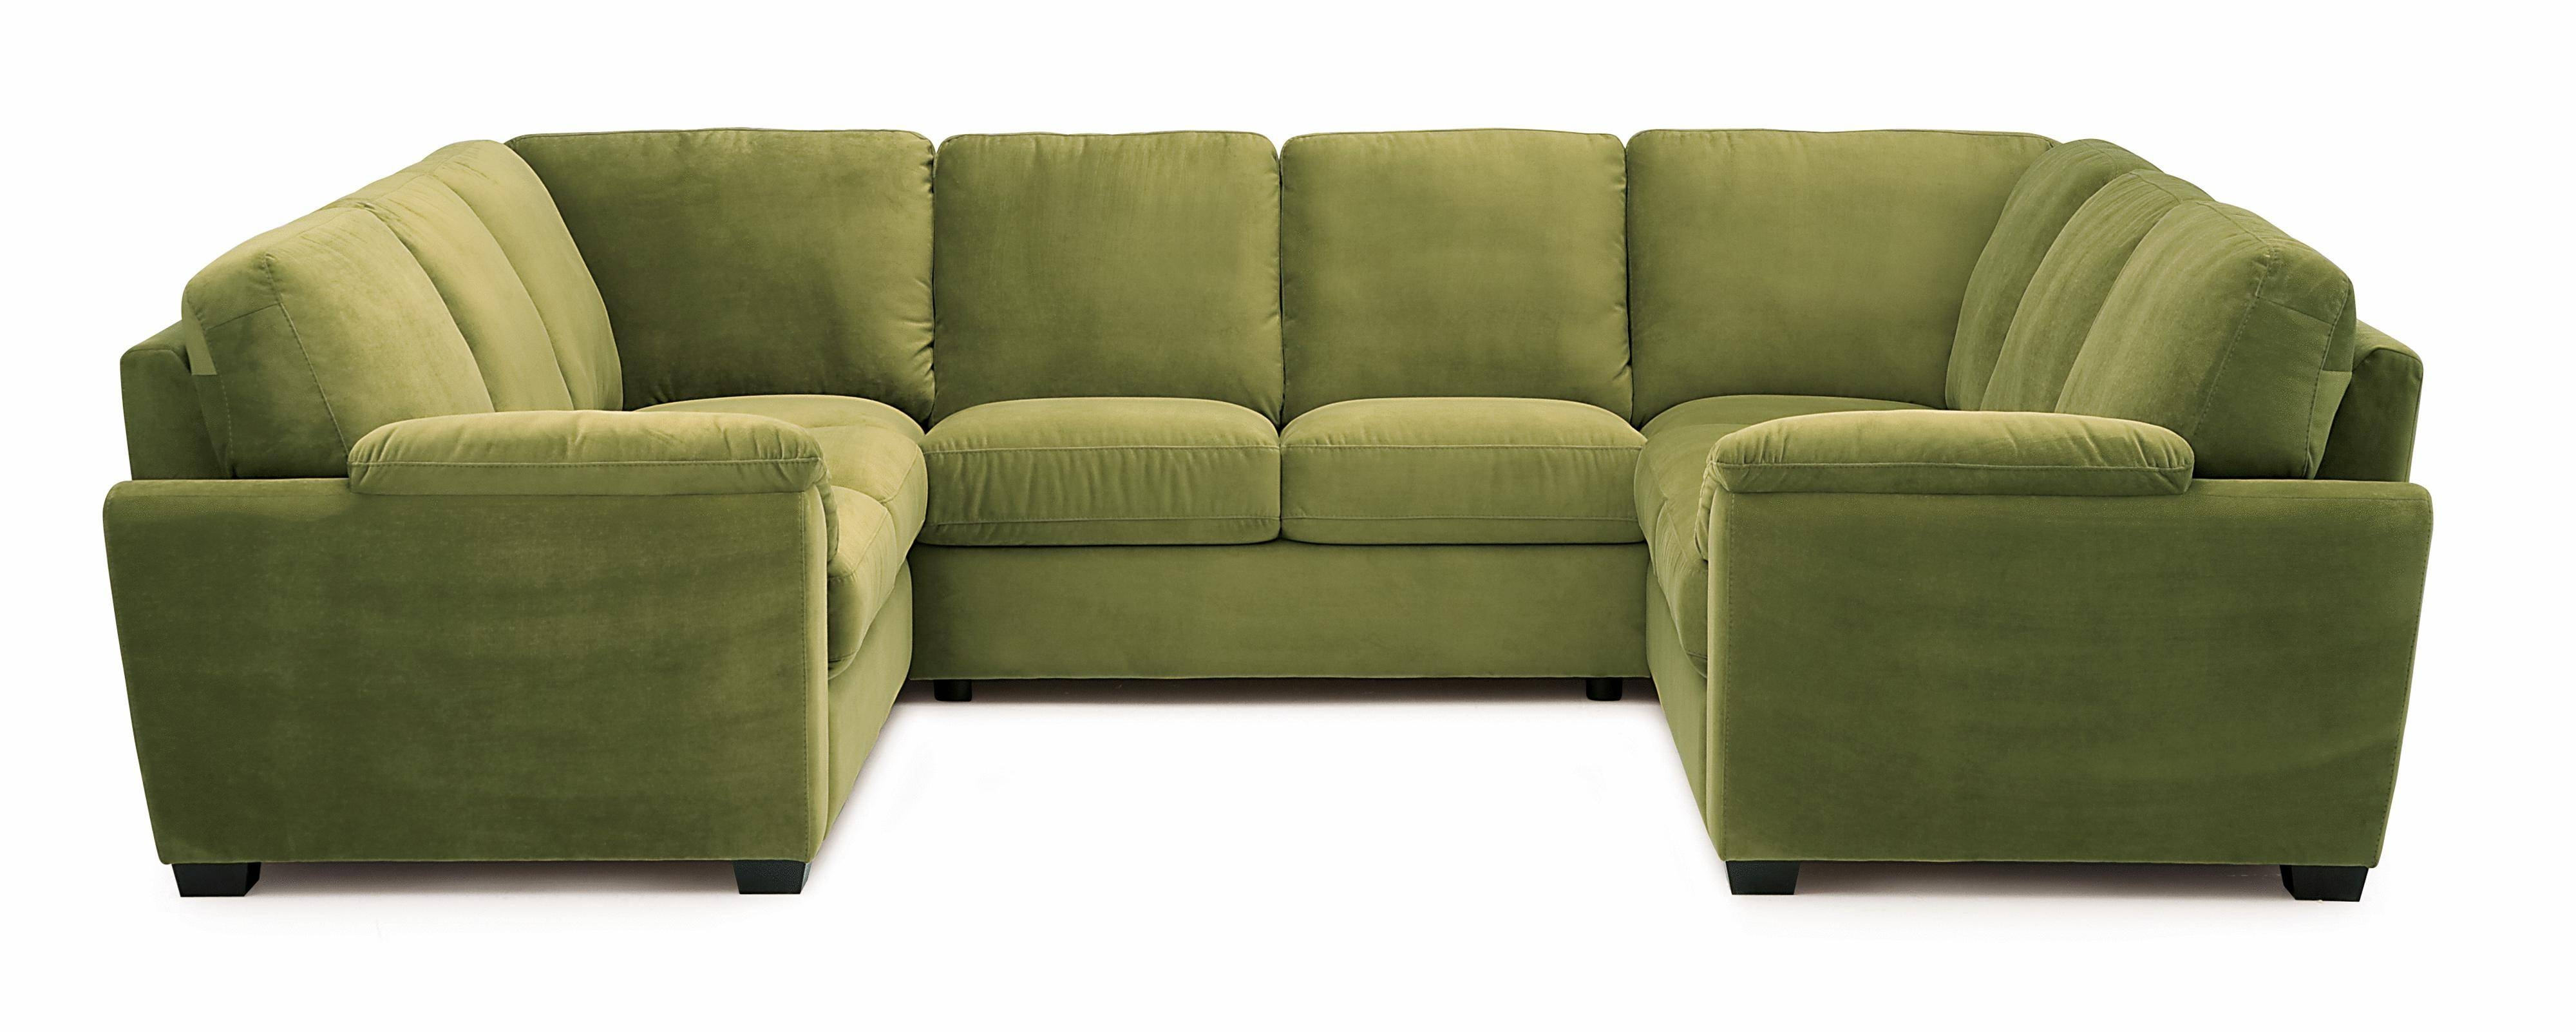 Sofas Center : Green Sectional Sofa With Chaise Deep Dark Forest intended for Green Sectional Sofa (Image 29 of 30)